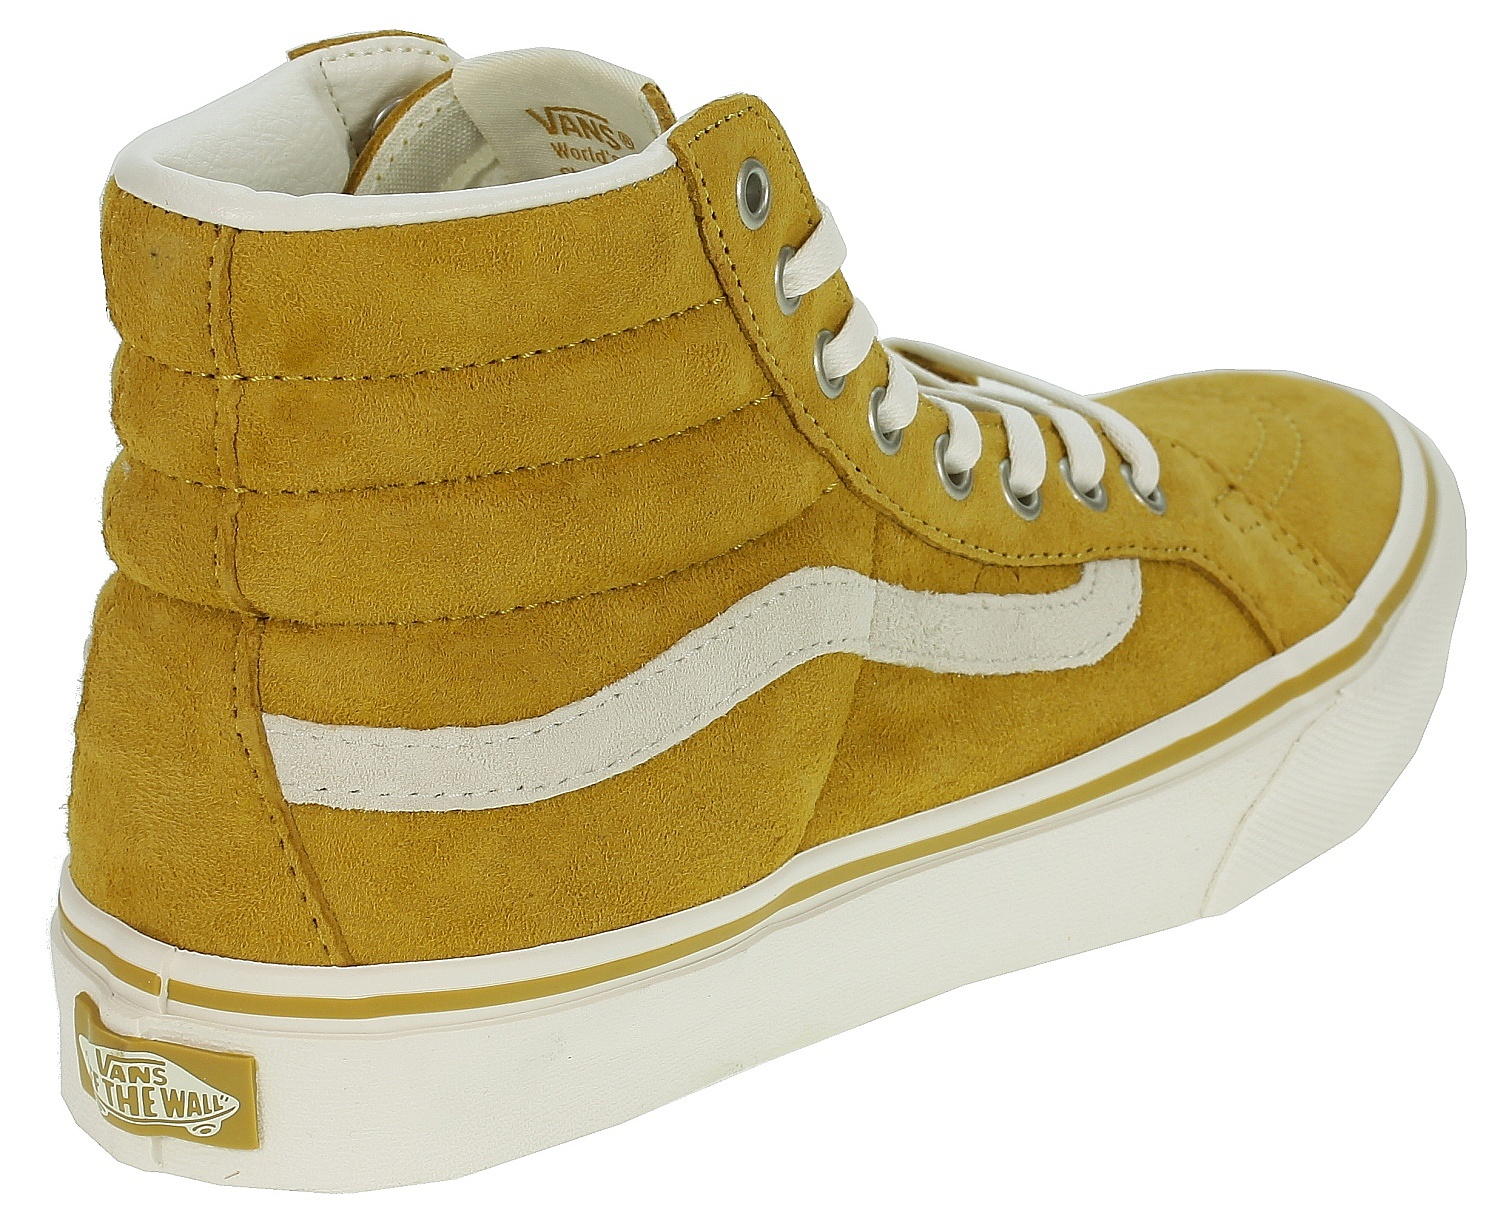 b94323d3e6 ... shoes Vans Sk8-Hi Slim - Scotchgard Amber Gold Marshmallow ...